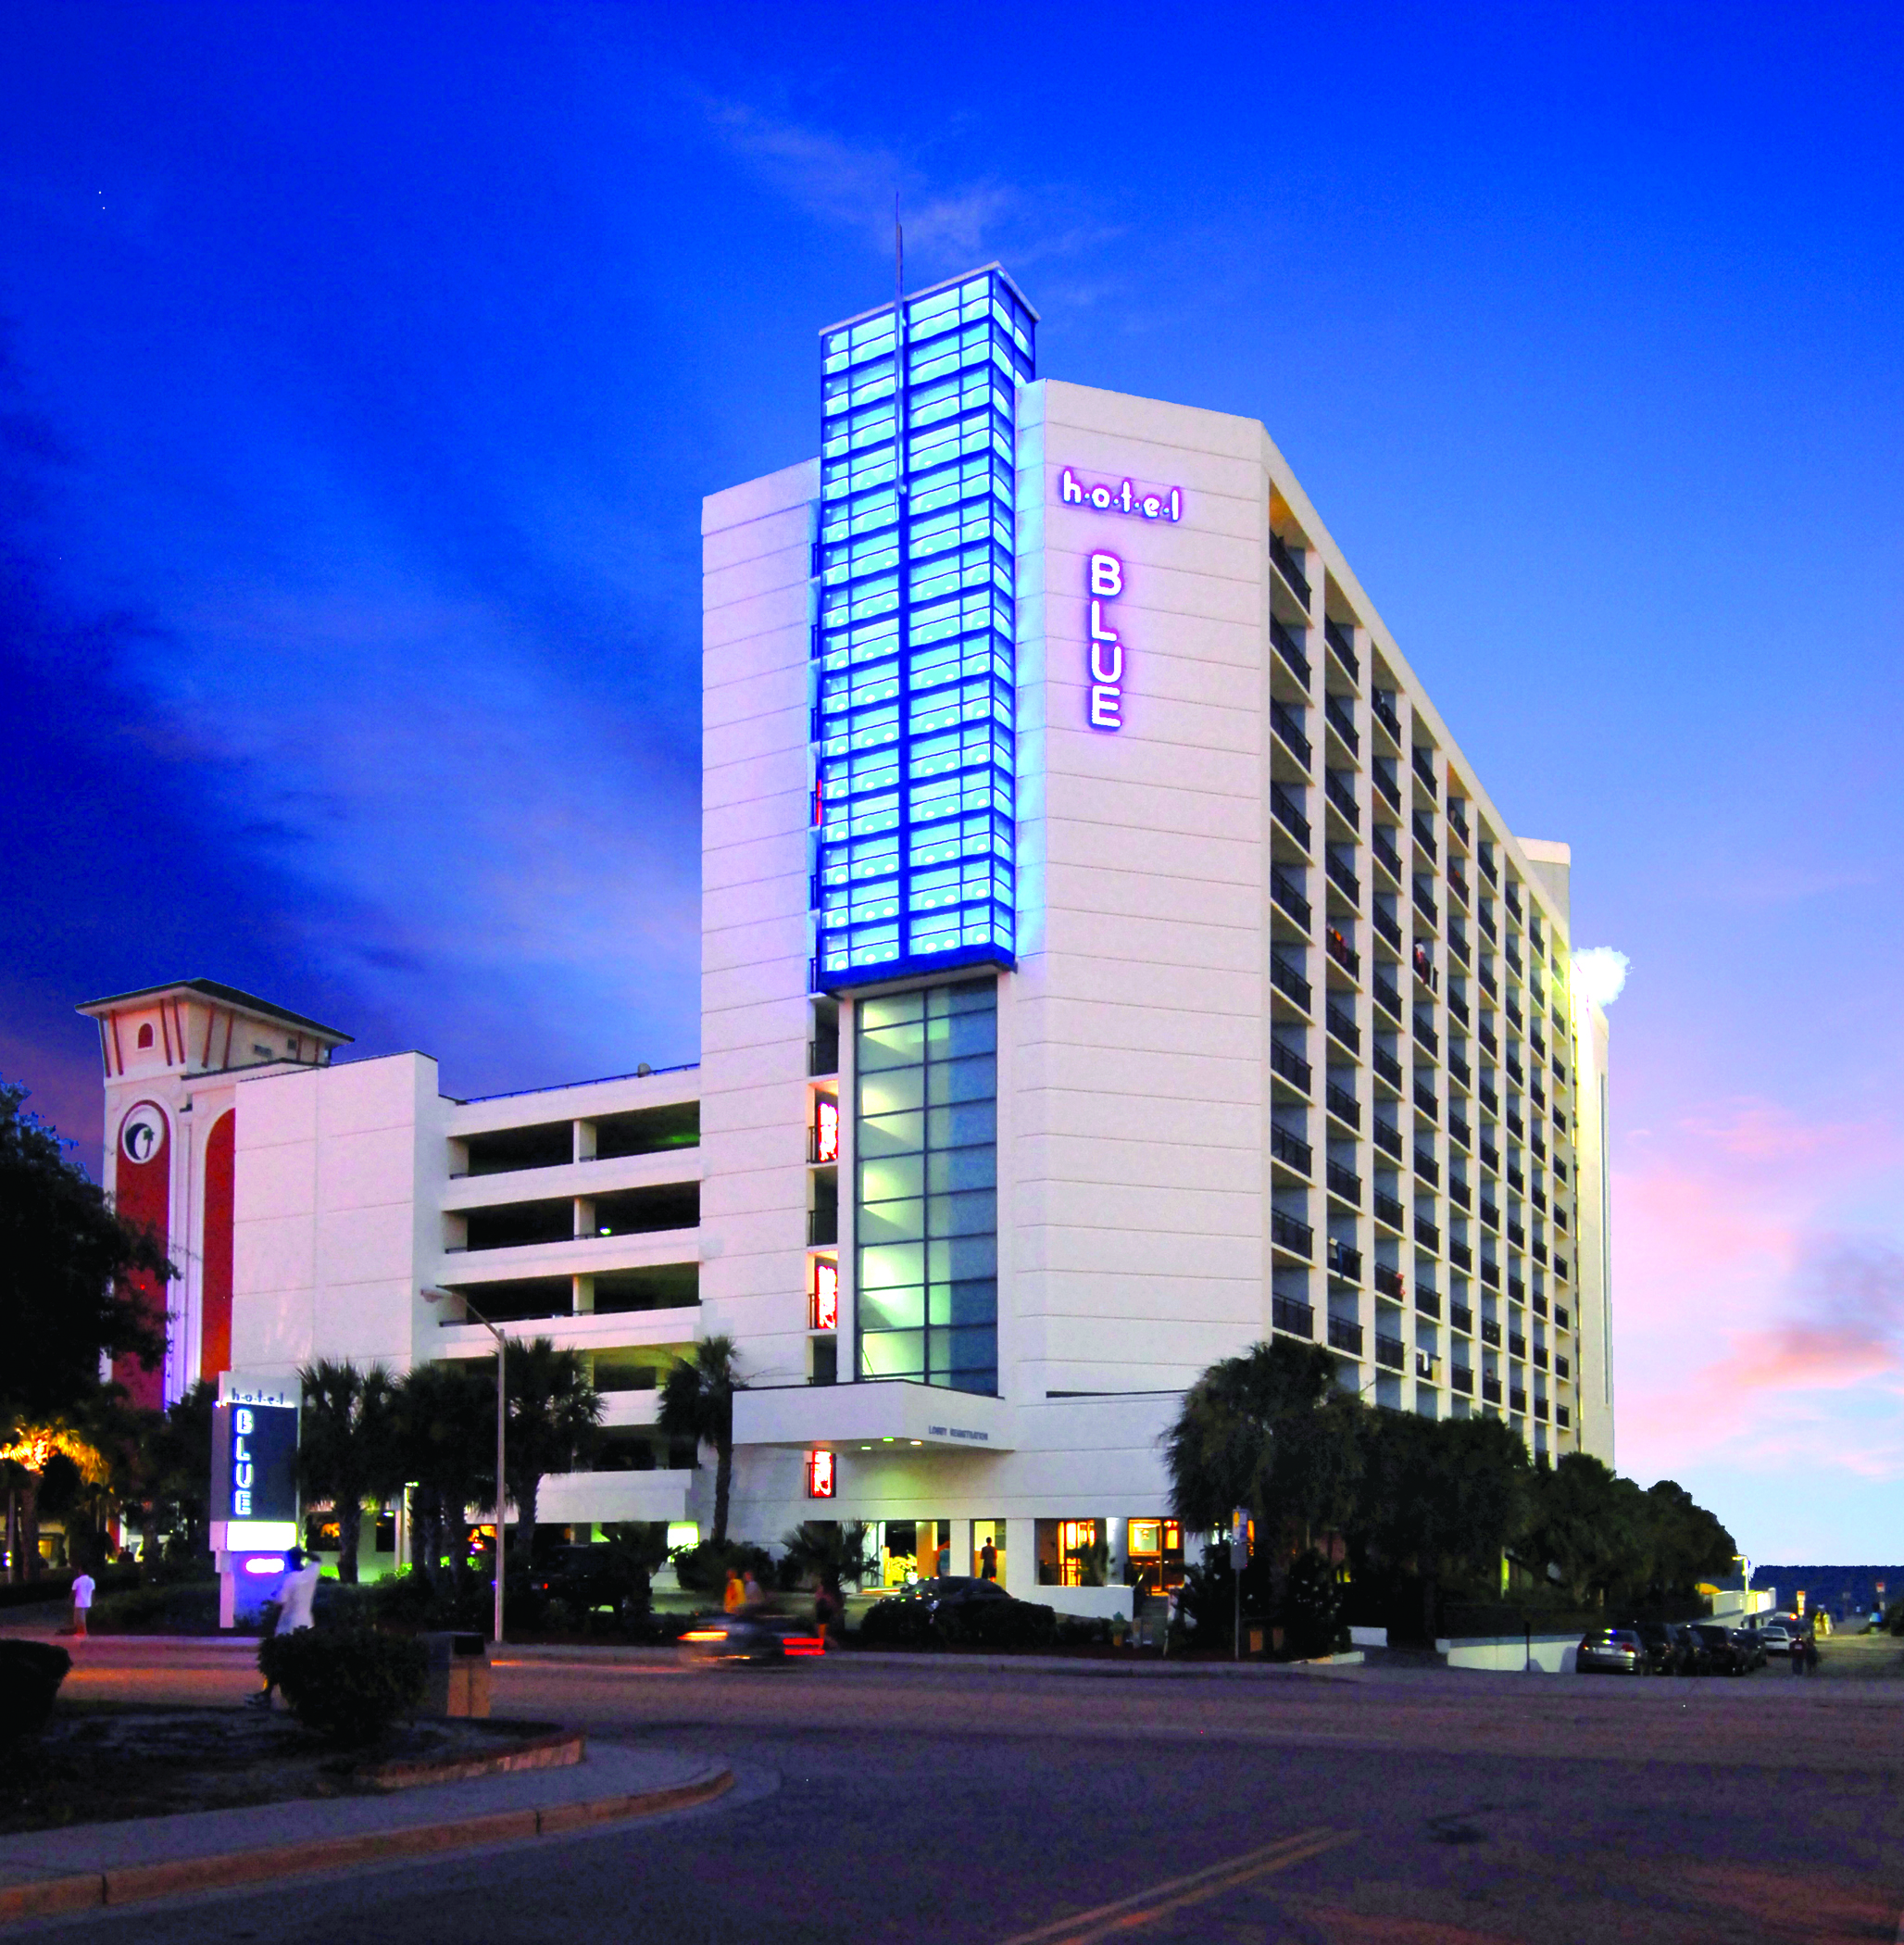 hotel BLUE Resort Information, Myrtle Beach, SC